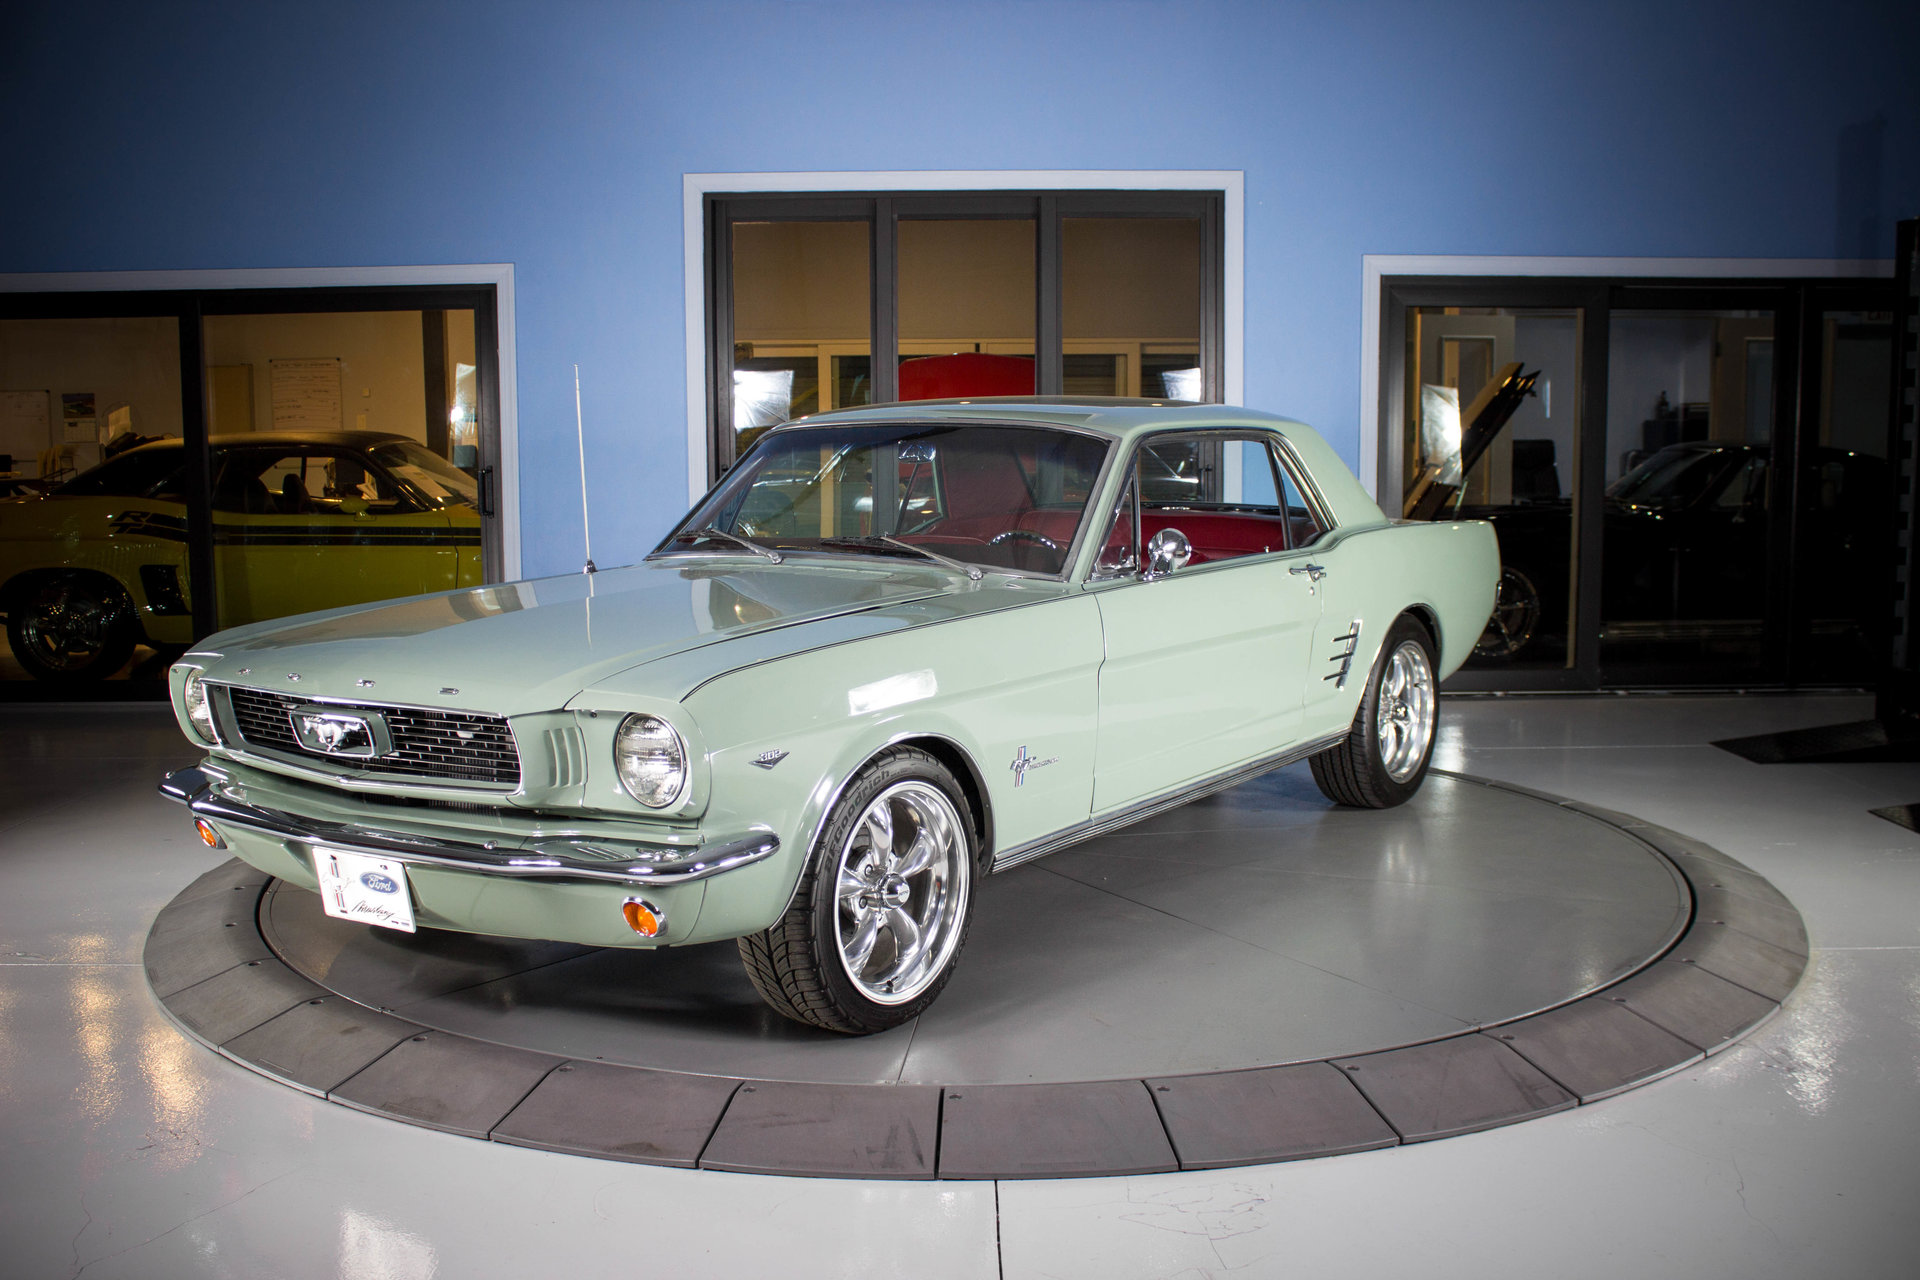 1966 ford mustang classic cars used cars for sale in tampa fl. Black Bedroom Furniture Sets. Home Design Ideas